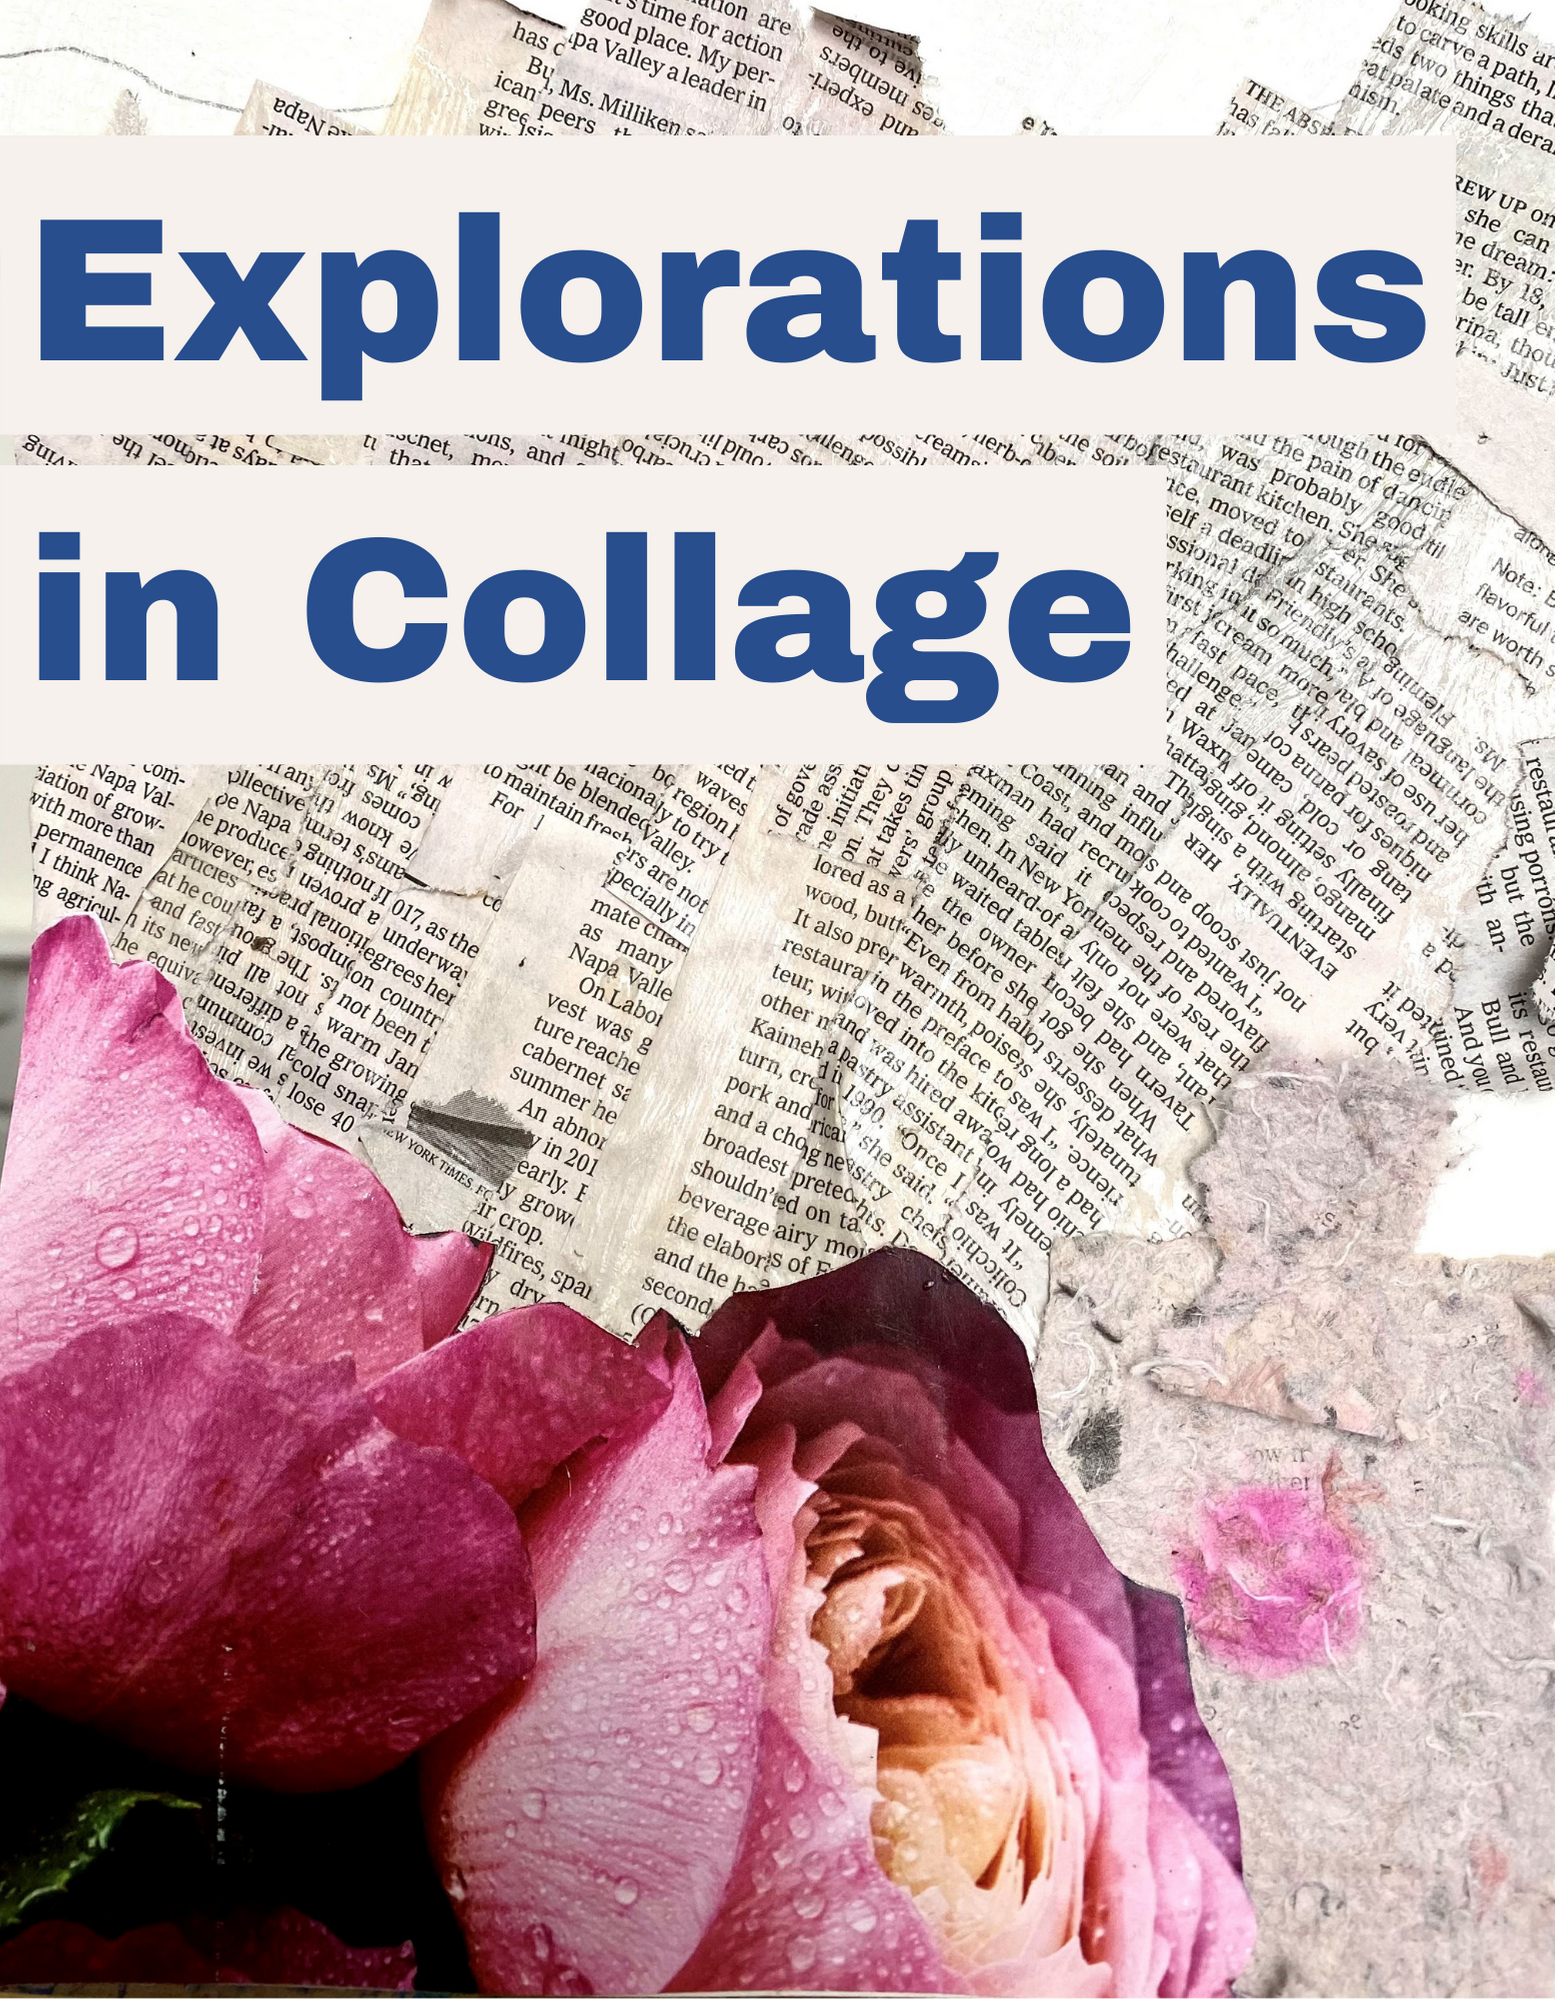 Explorations in Collage with newspaper and picture of flowers Opens in new window